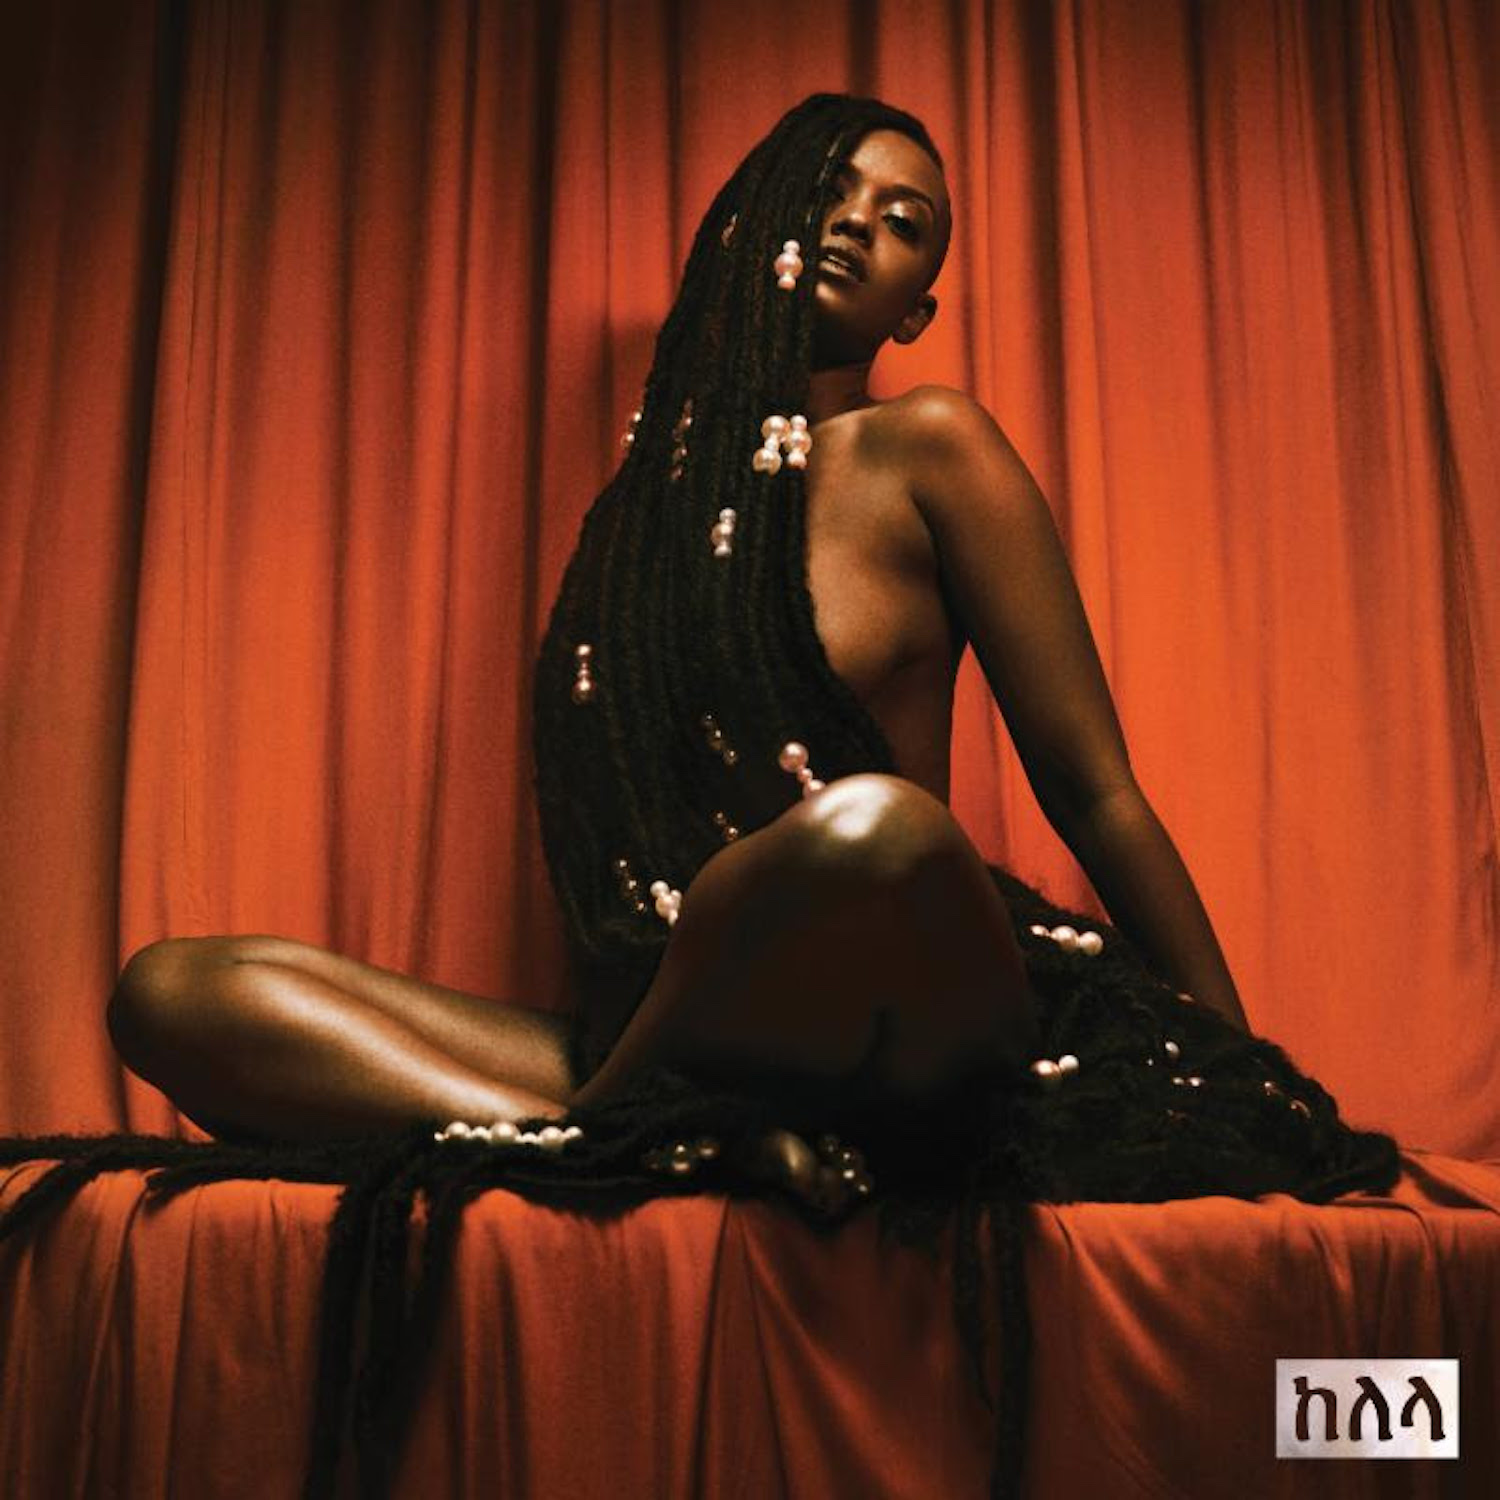 kelela take me apart album debut new The 25 Most Anticipated Albums of Fall 2017